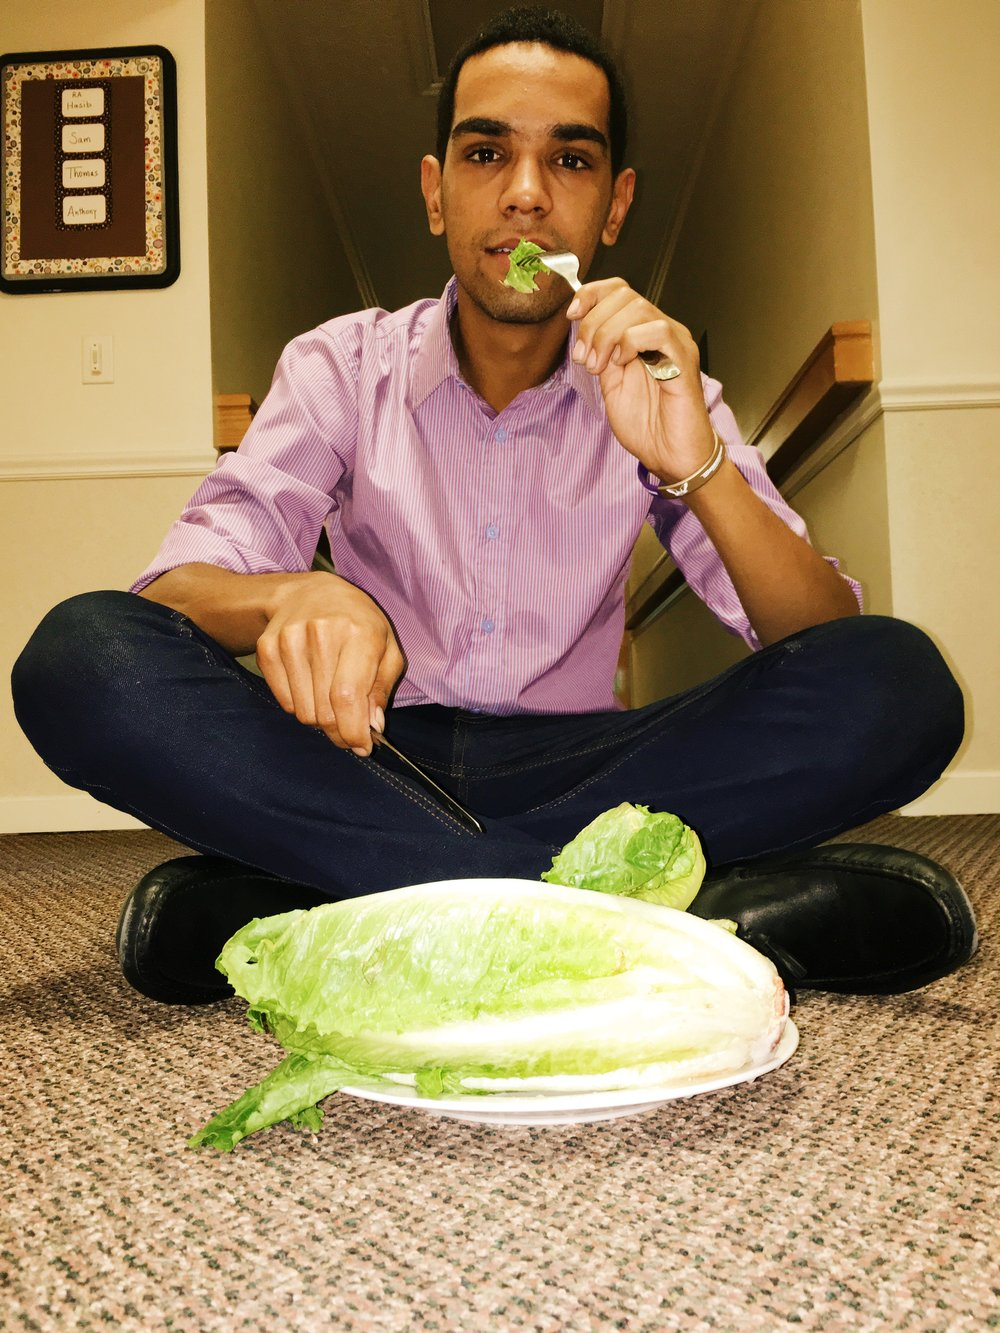 "Munching on a plate of lettuce, first-year international student Muhammad Hassan Rao said he has been eating vegetables and peanut butter for the past few days, since Westminster doesn't offer halal options for Muslim students. ""I feel weak,"" Rao said. Photo credit Hasib Hussainzada."